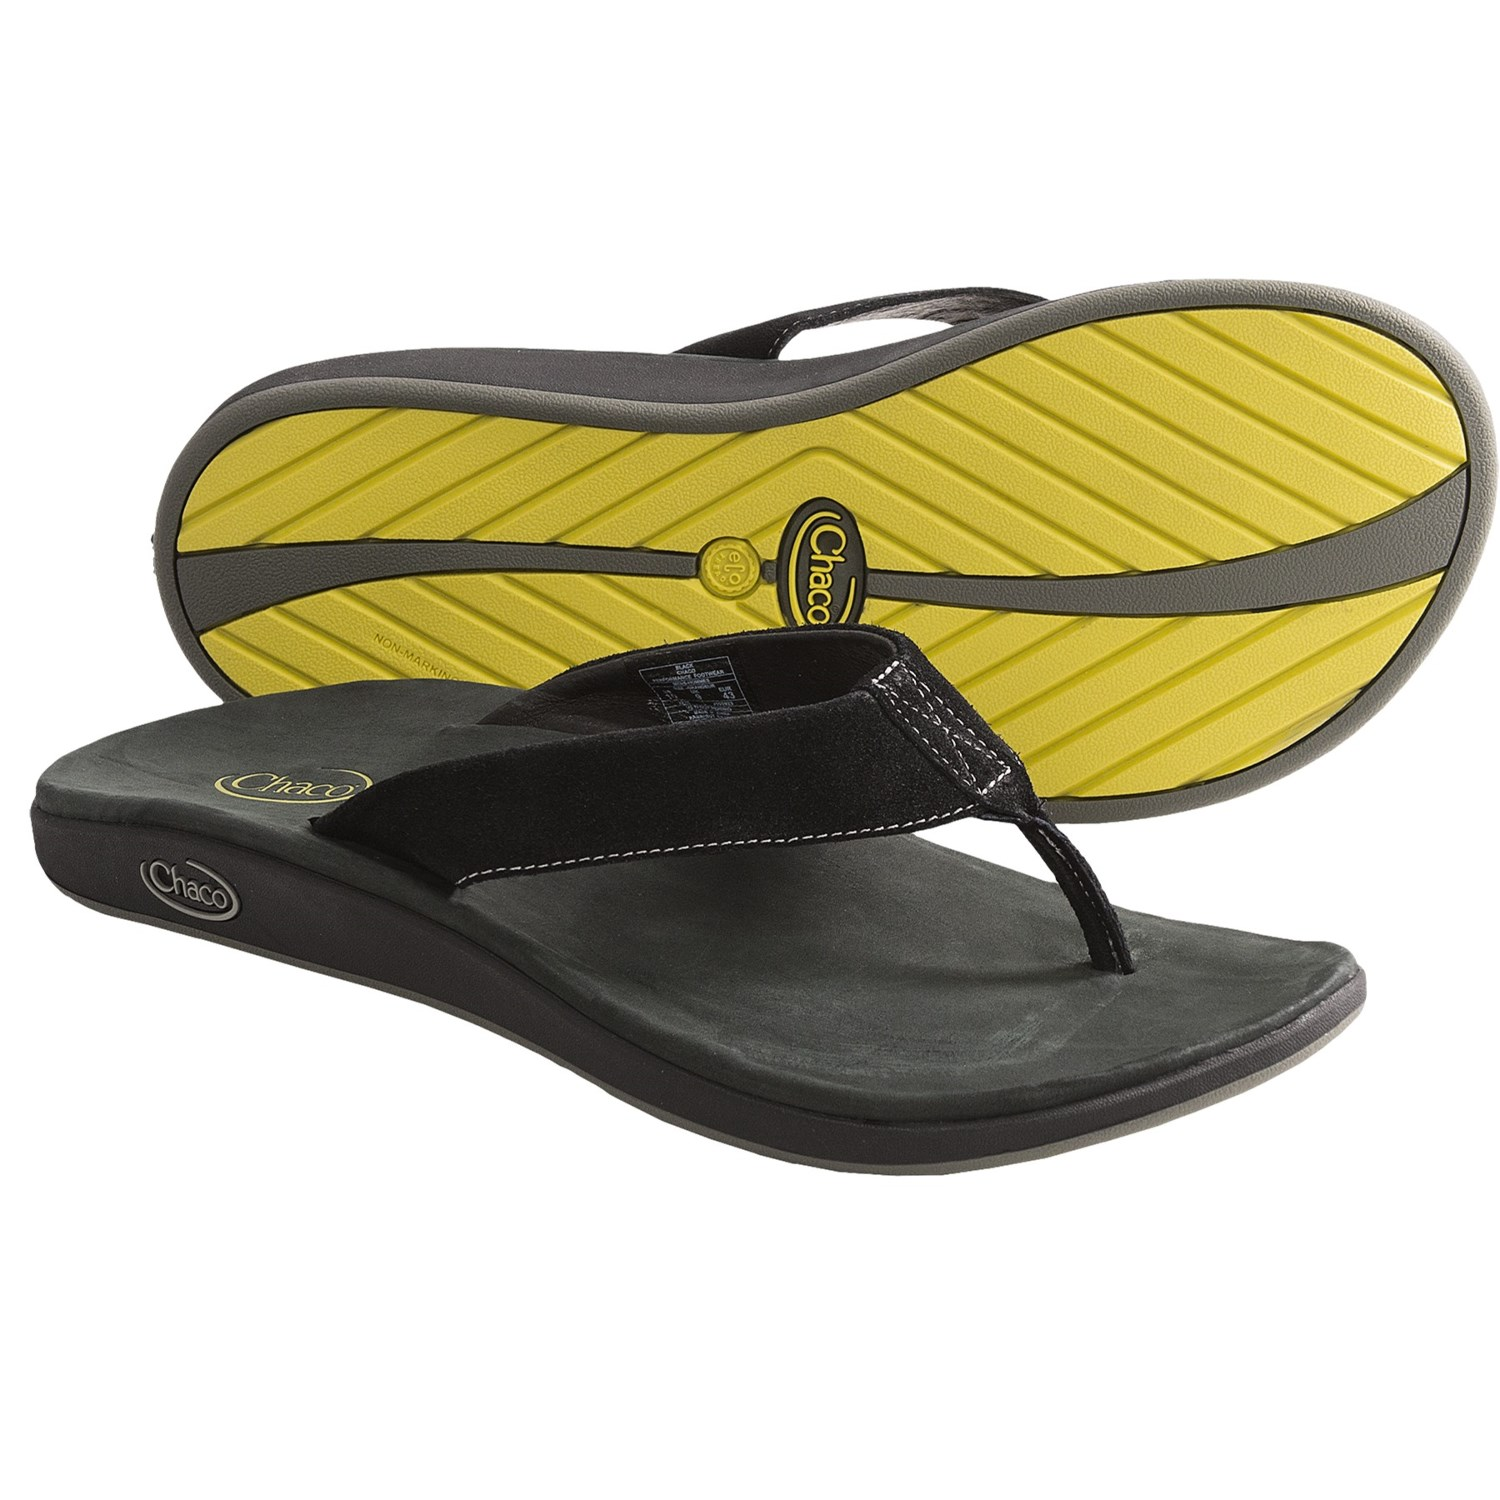 ea0dc9e5d51f9a Chaco Kolb Sandals - Leather